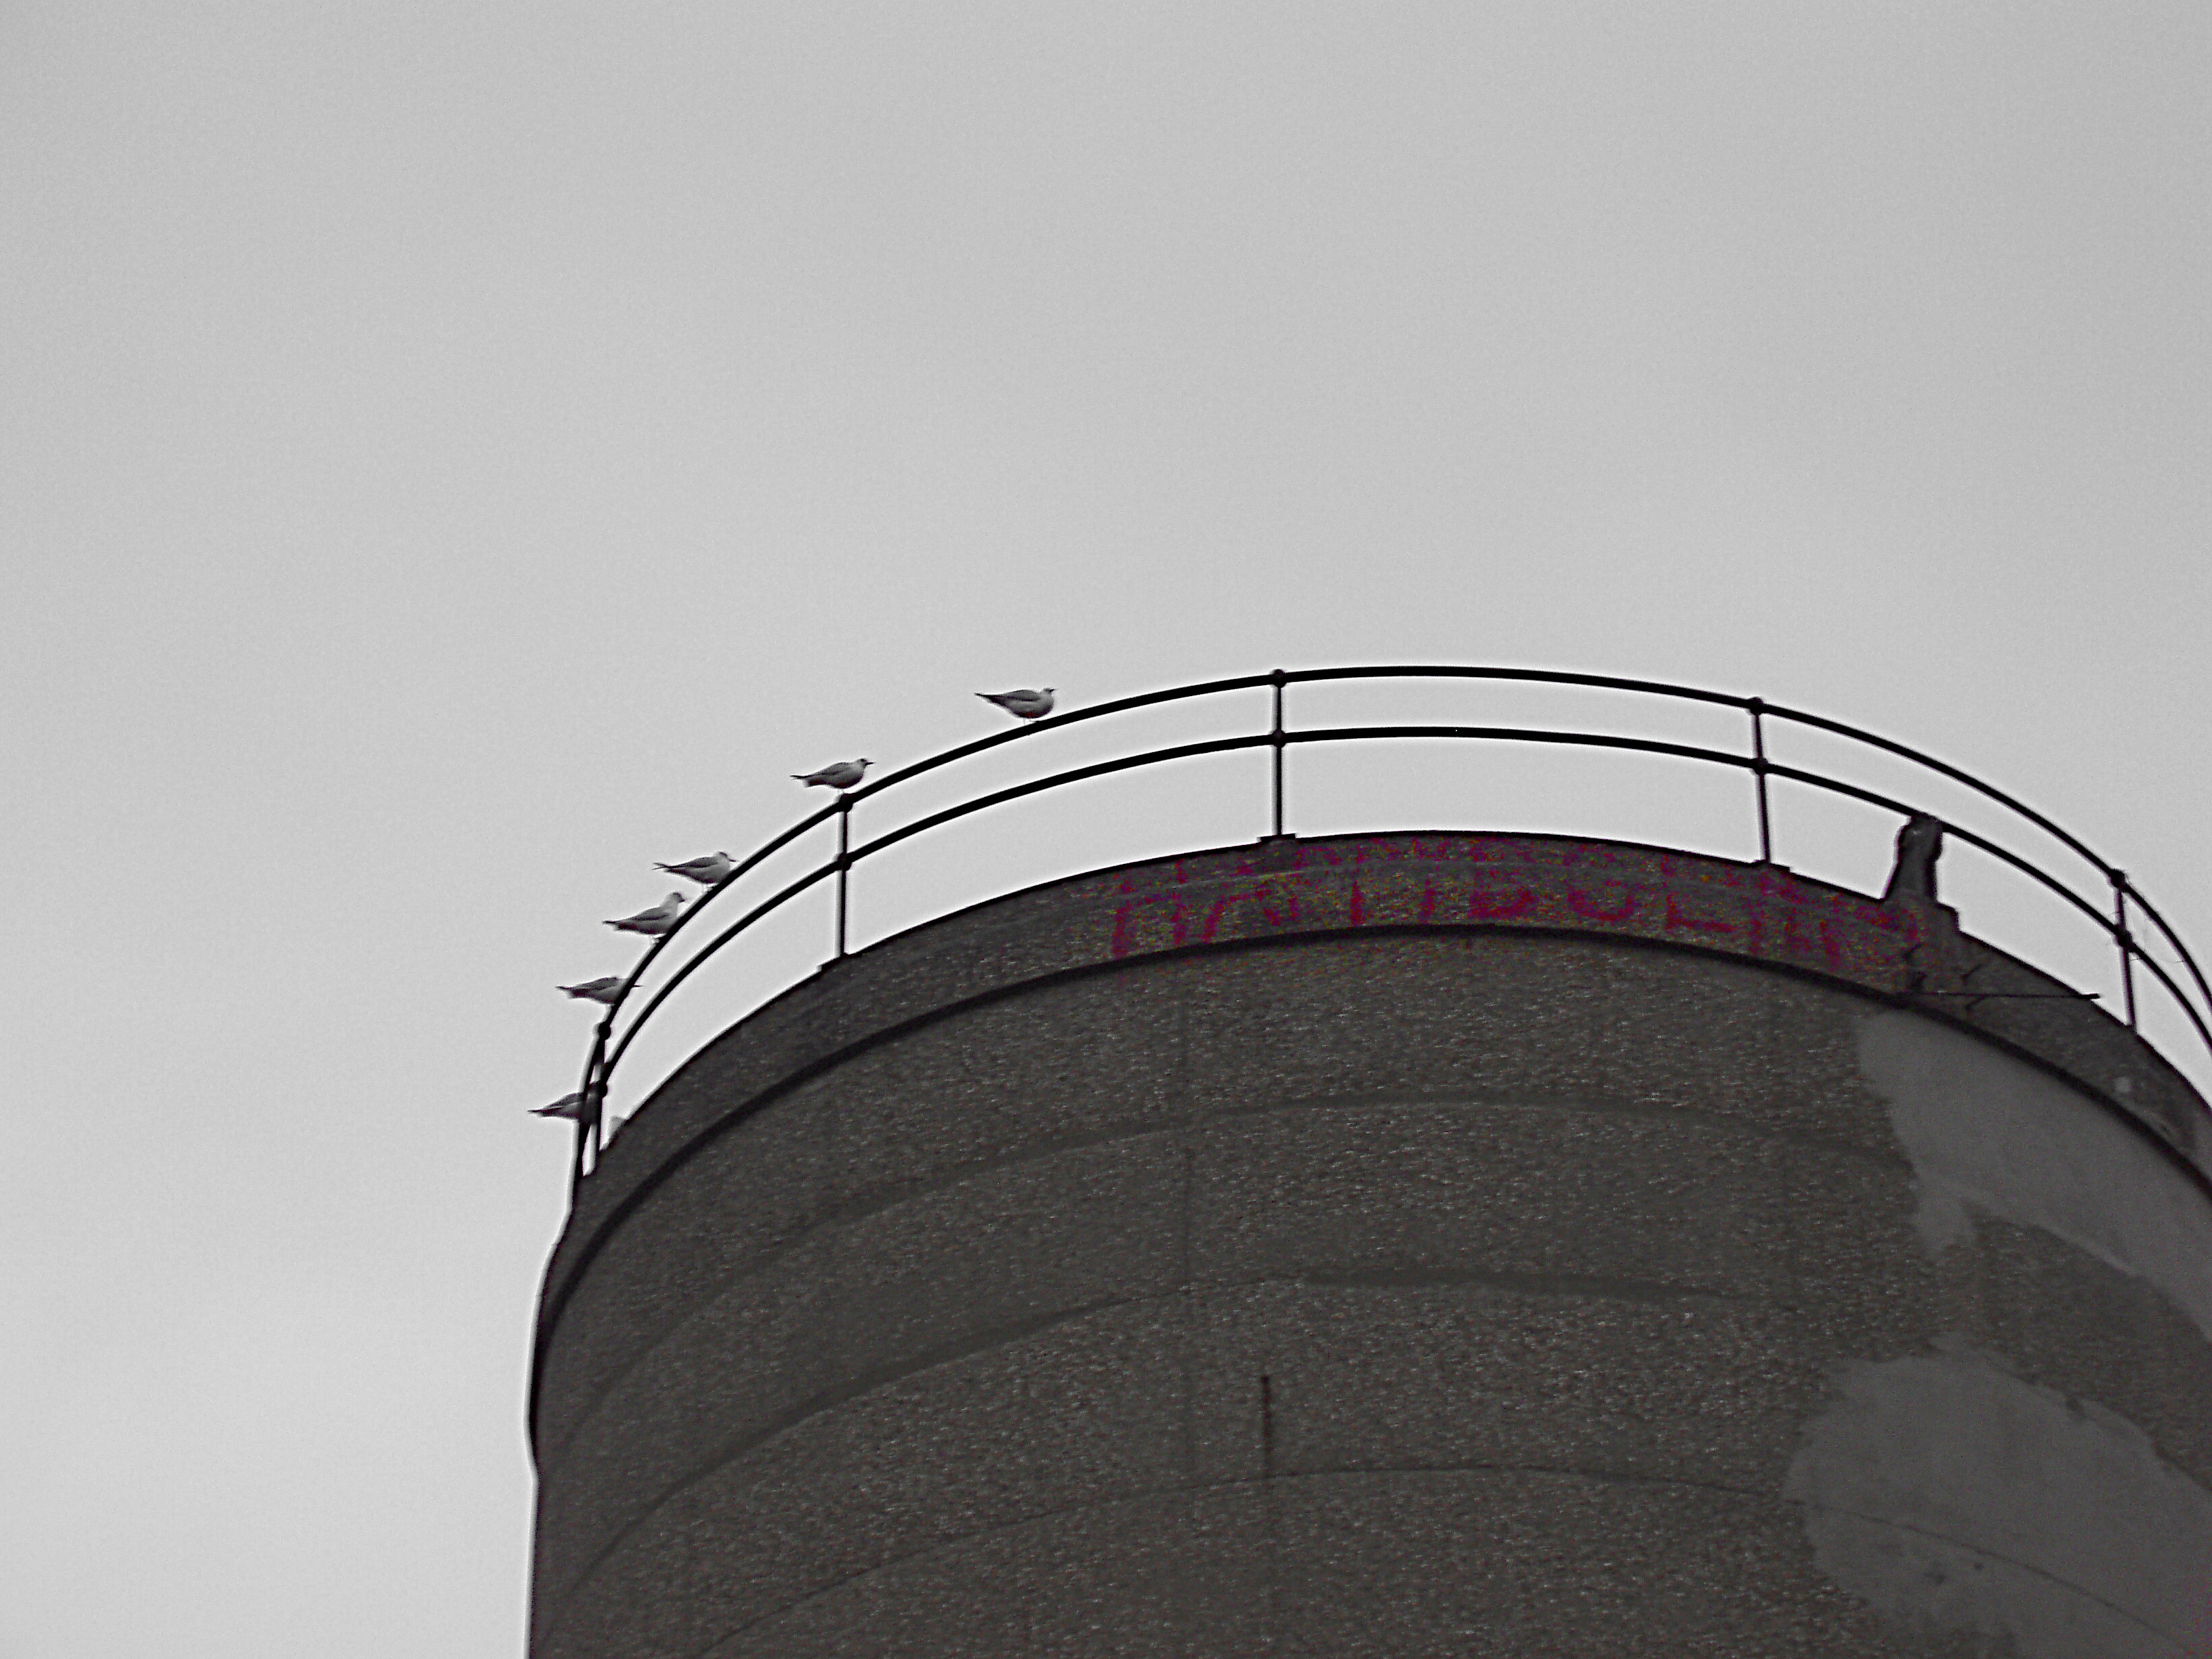 concrete water tower with pigeons